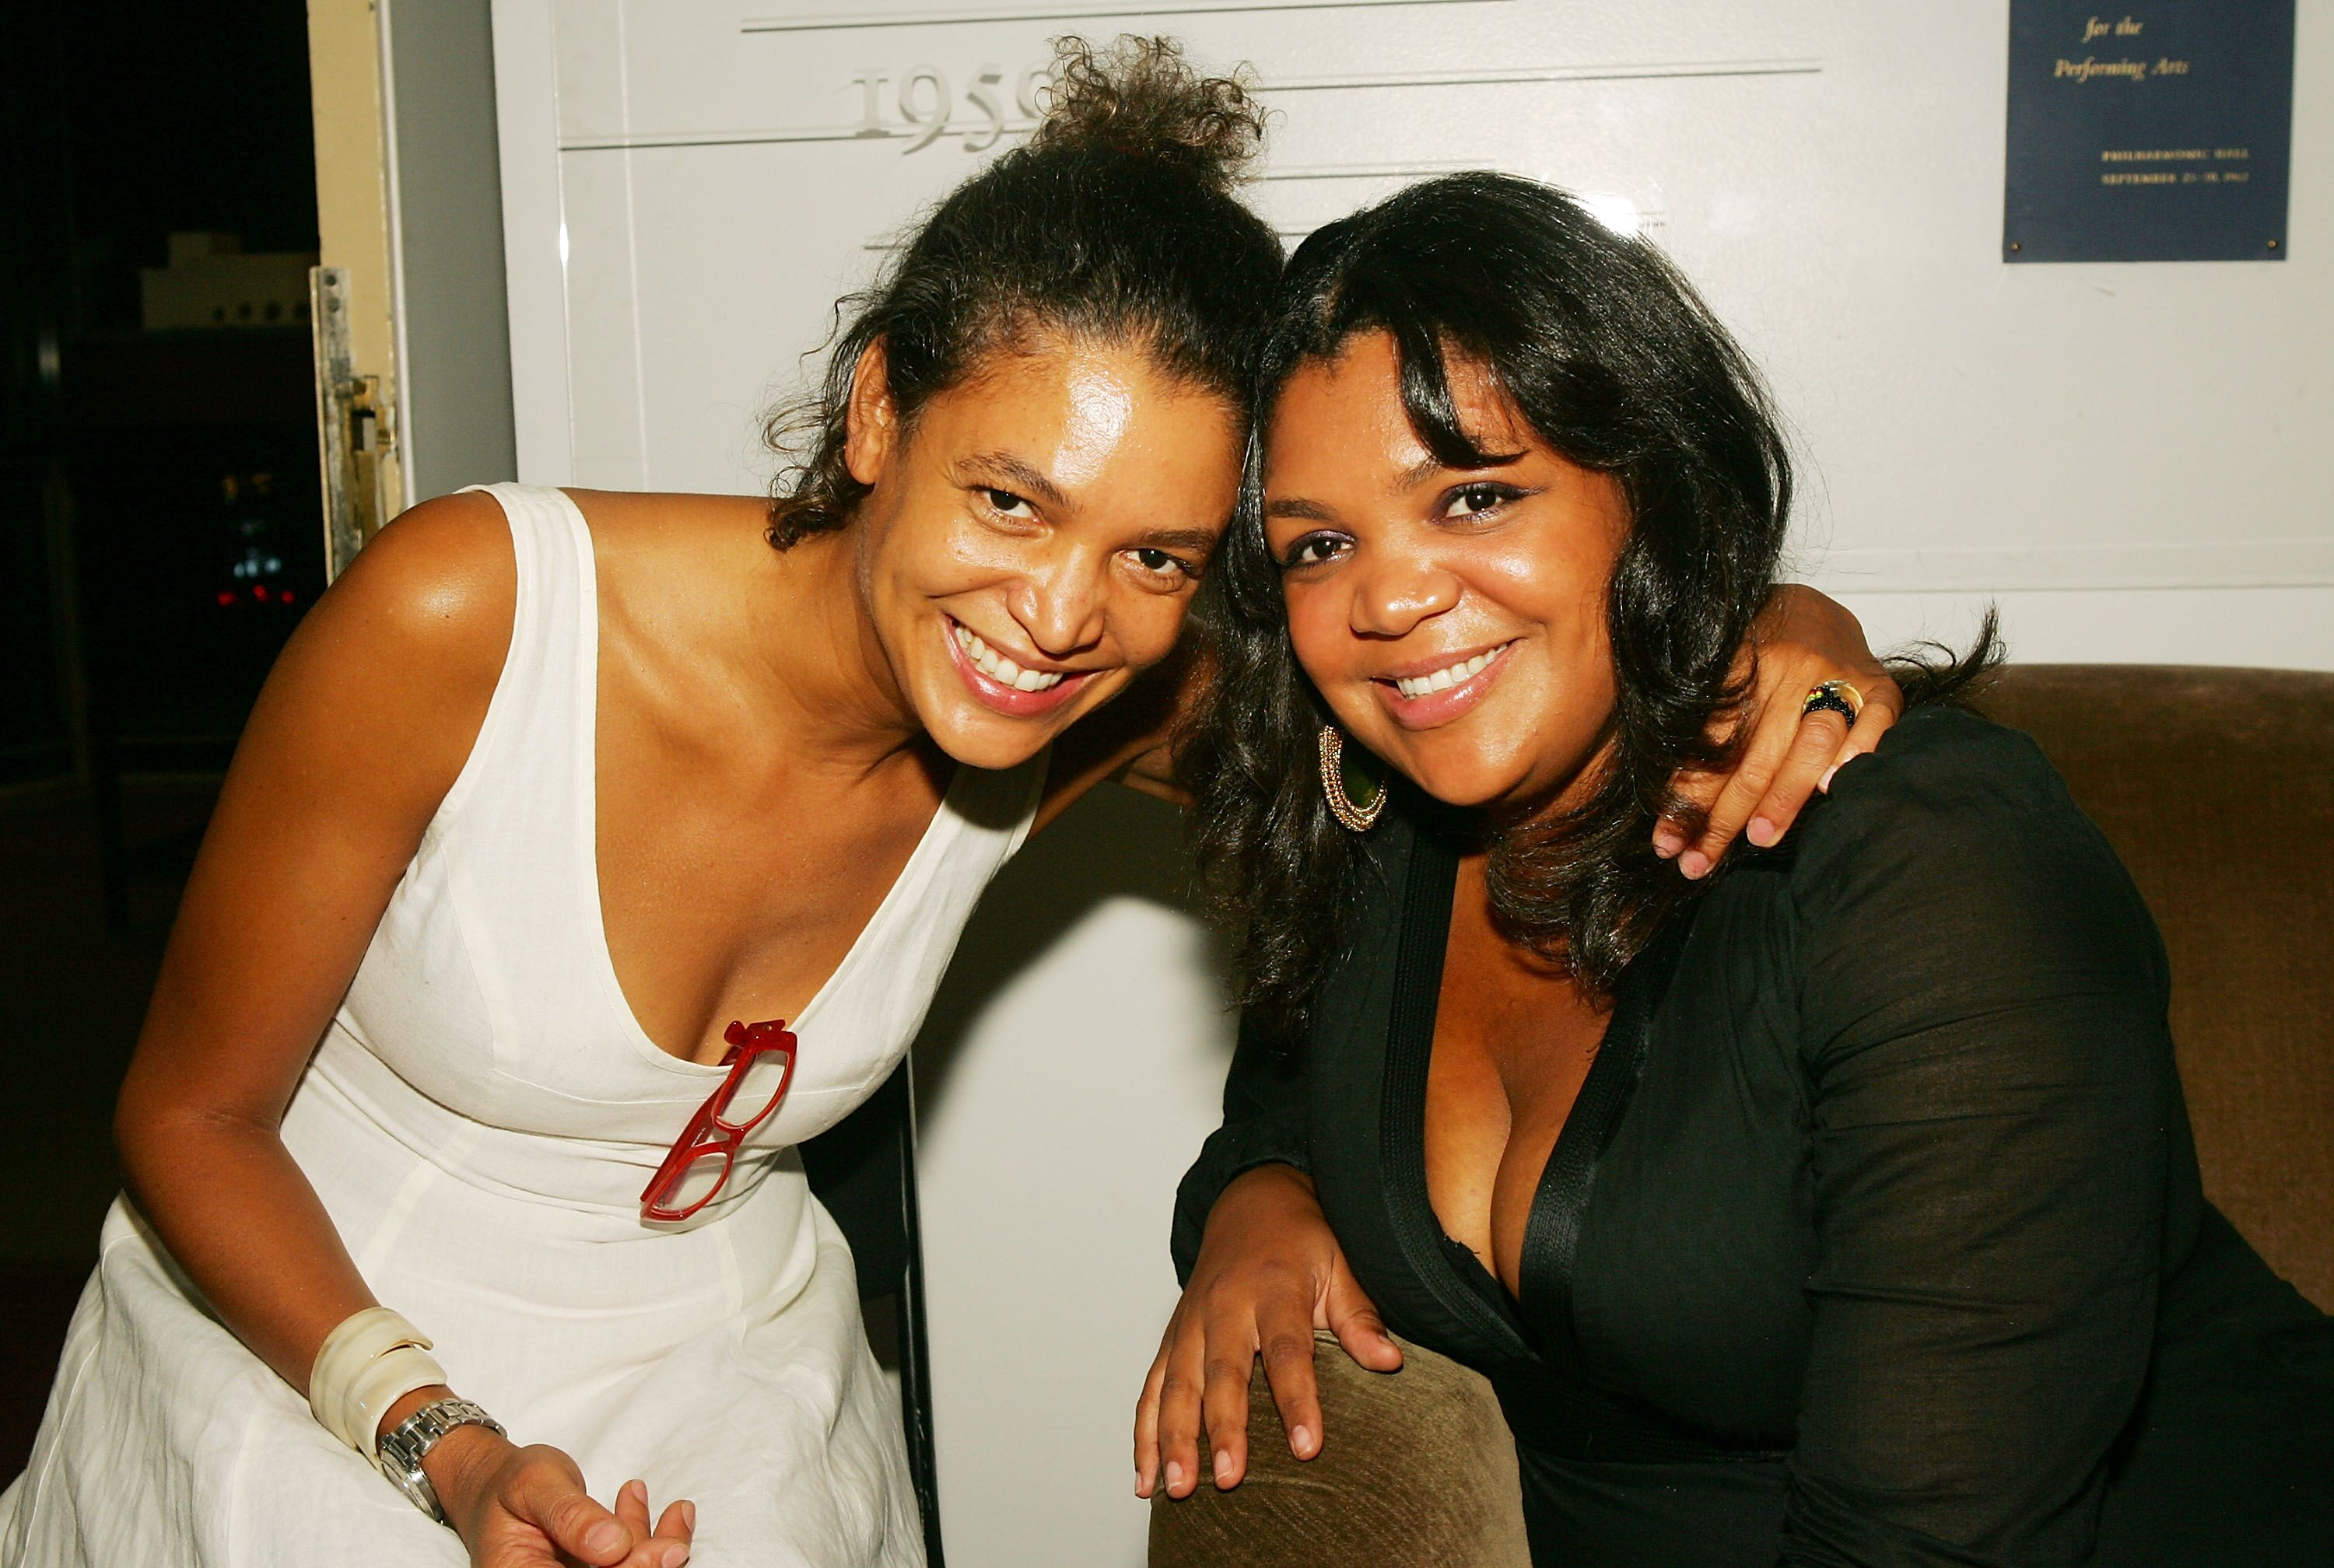 """Bill and Camille Cosby's  daughters Erinn and Evin at the premiere of """"Good Night, and Good Luck"""" in New York in 2005 